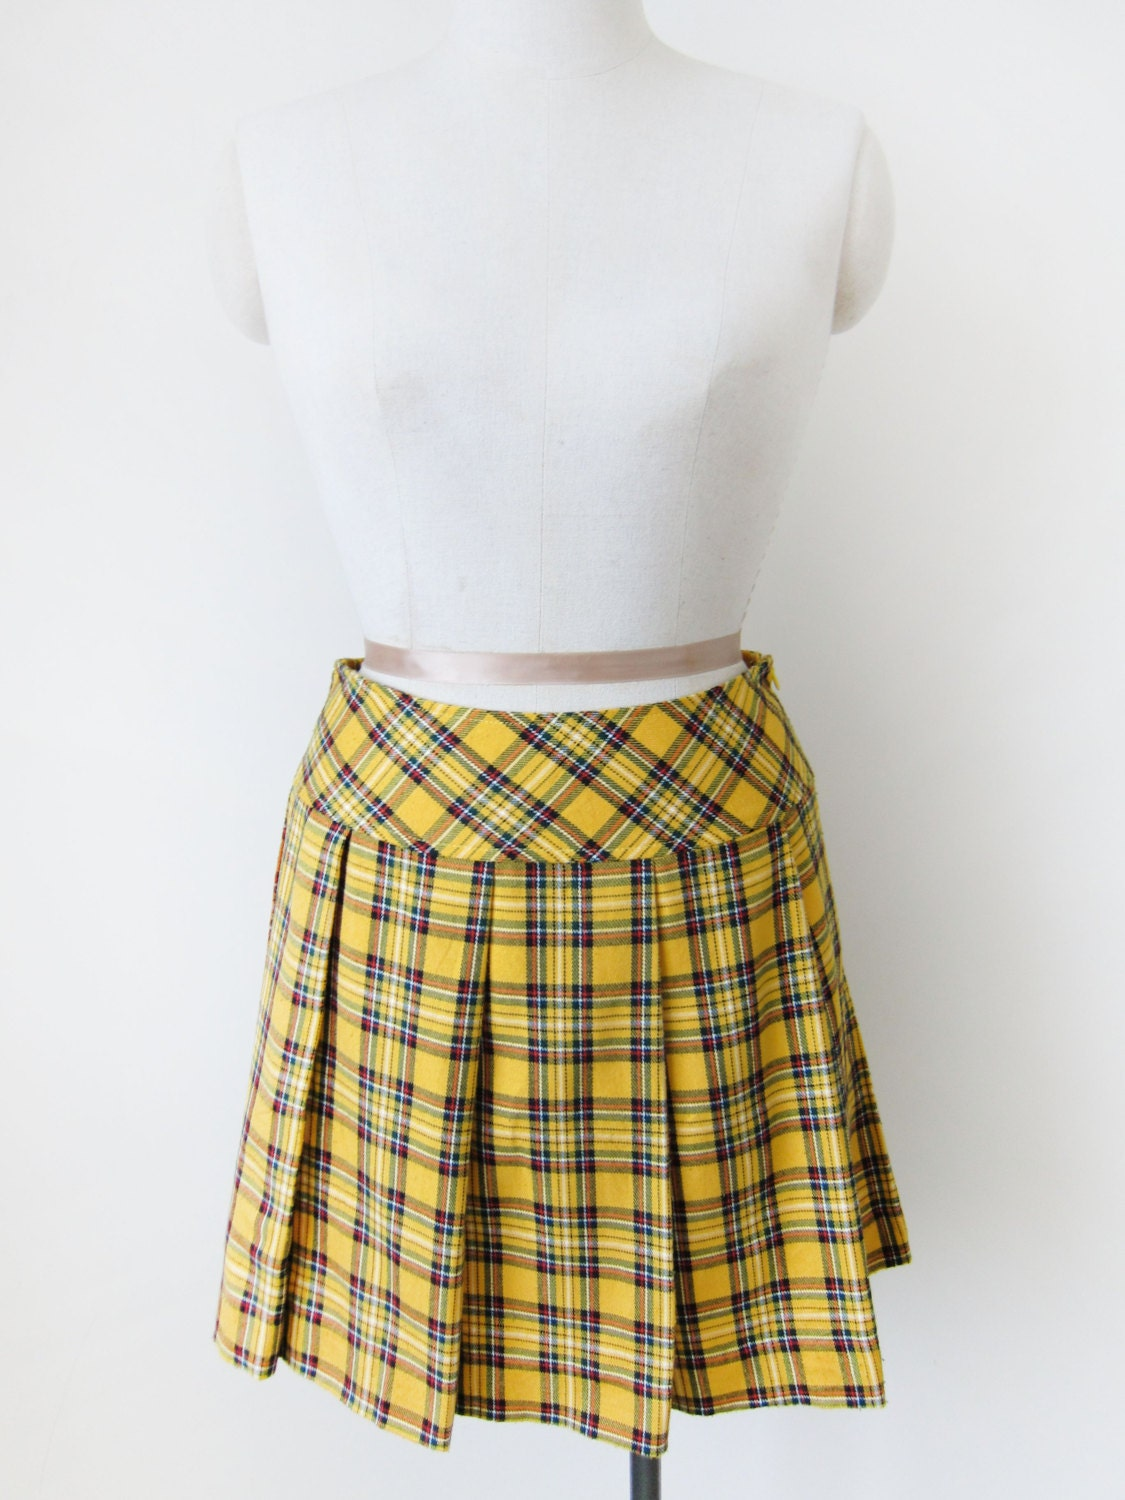 SALE HALF PRICE Vintage Yellow Plaid Cotton Mini Pleated Skirt